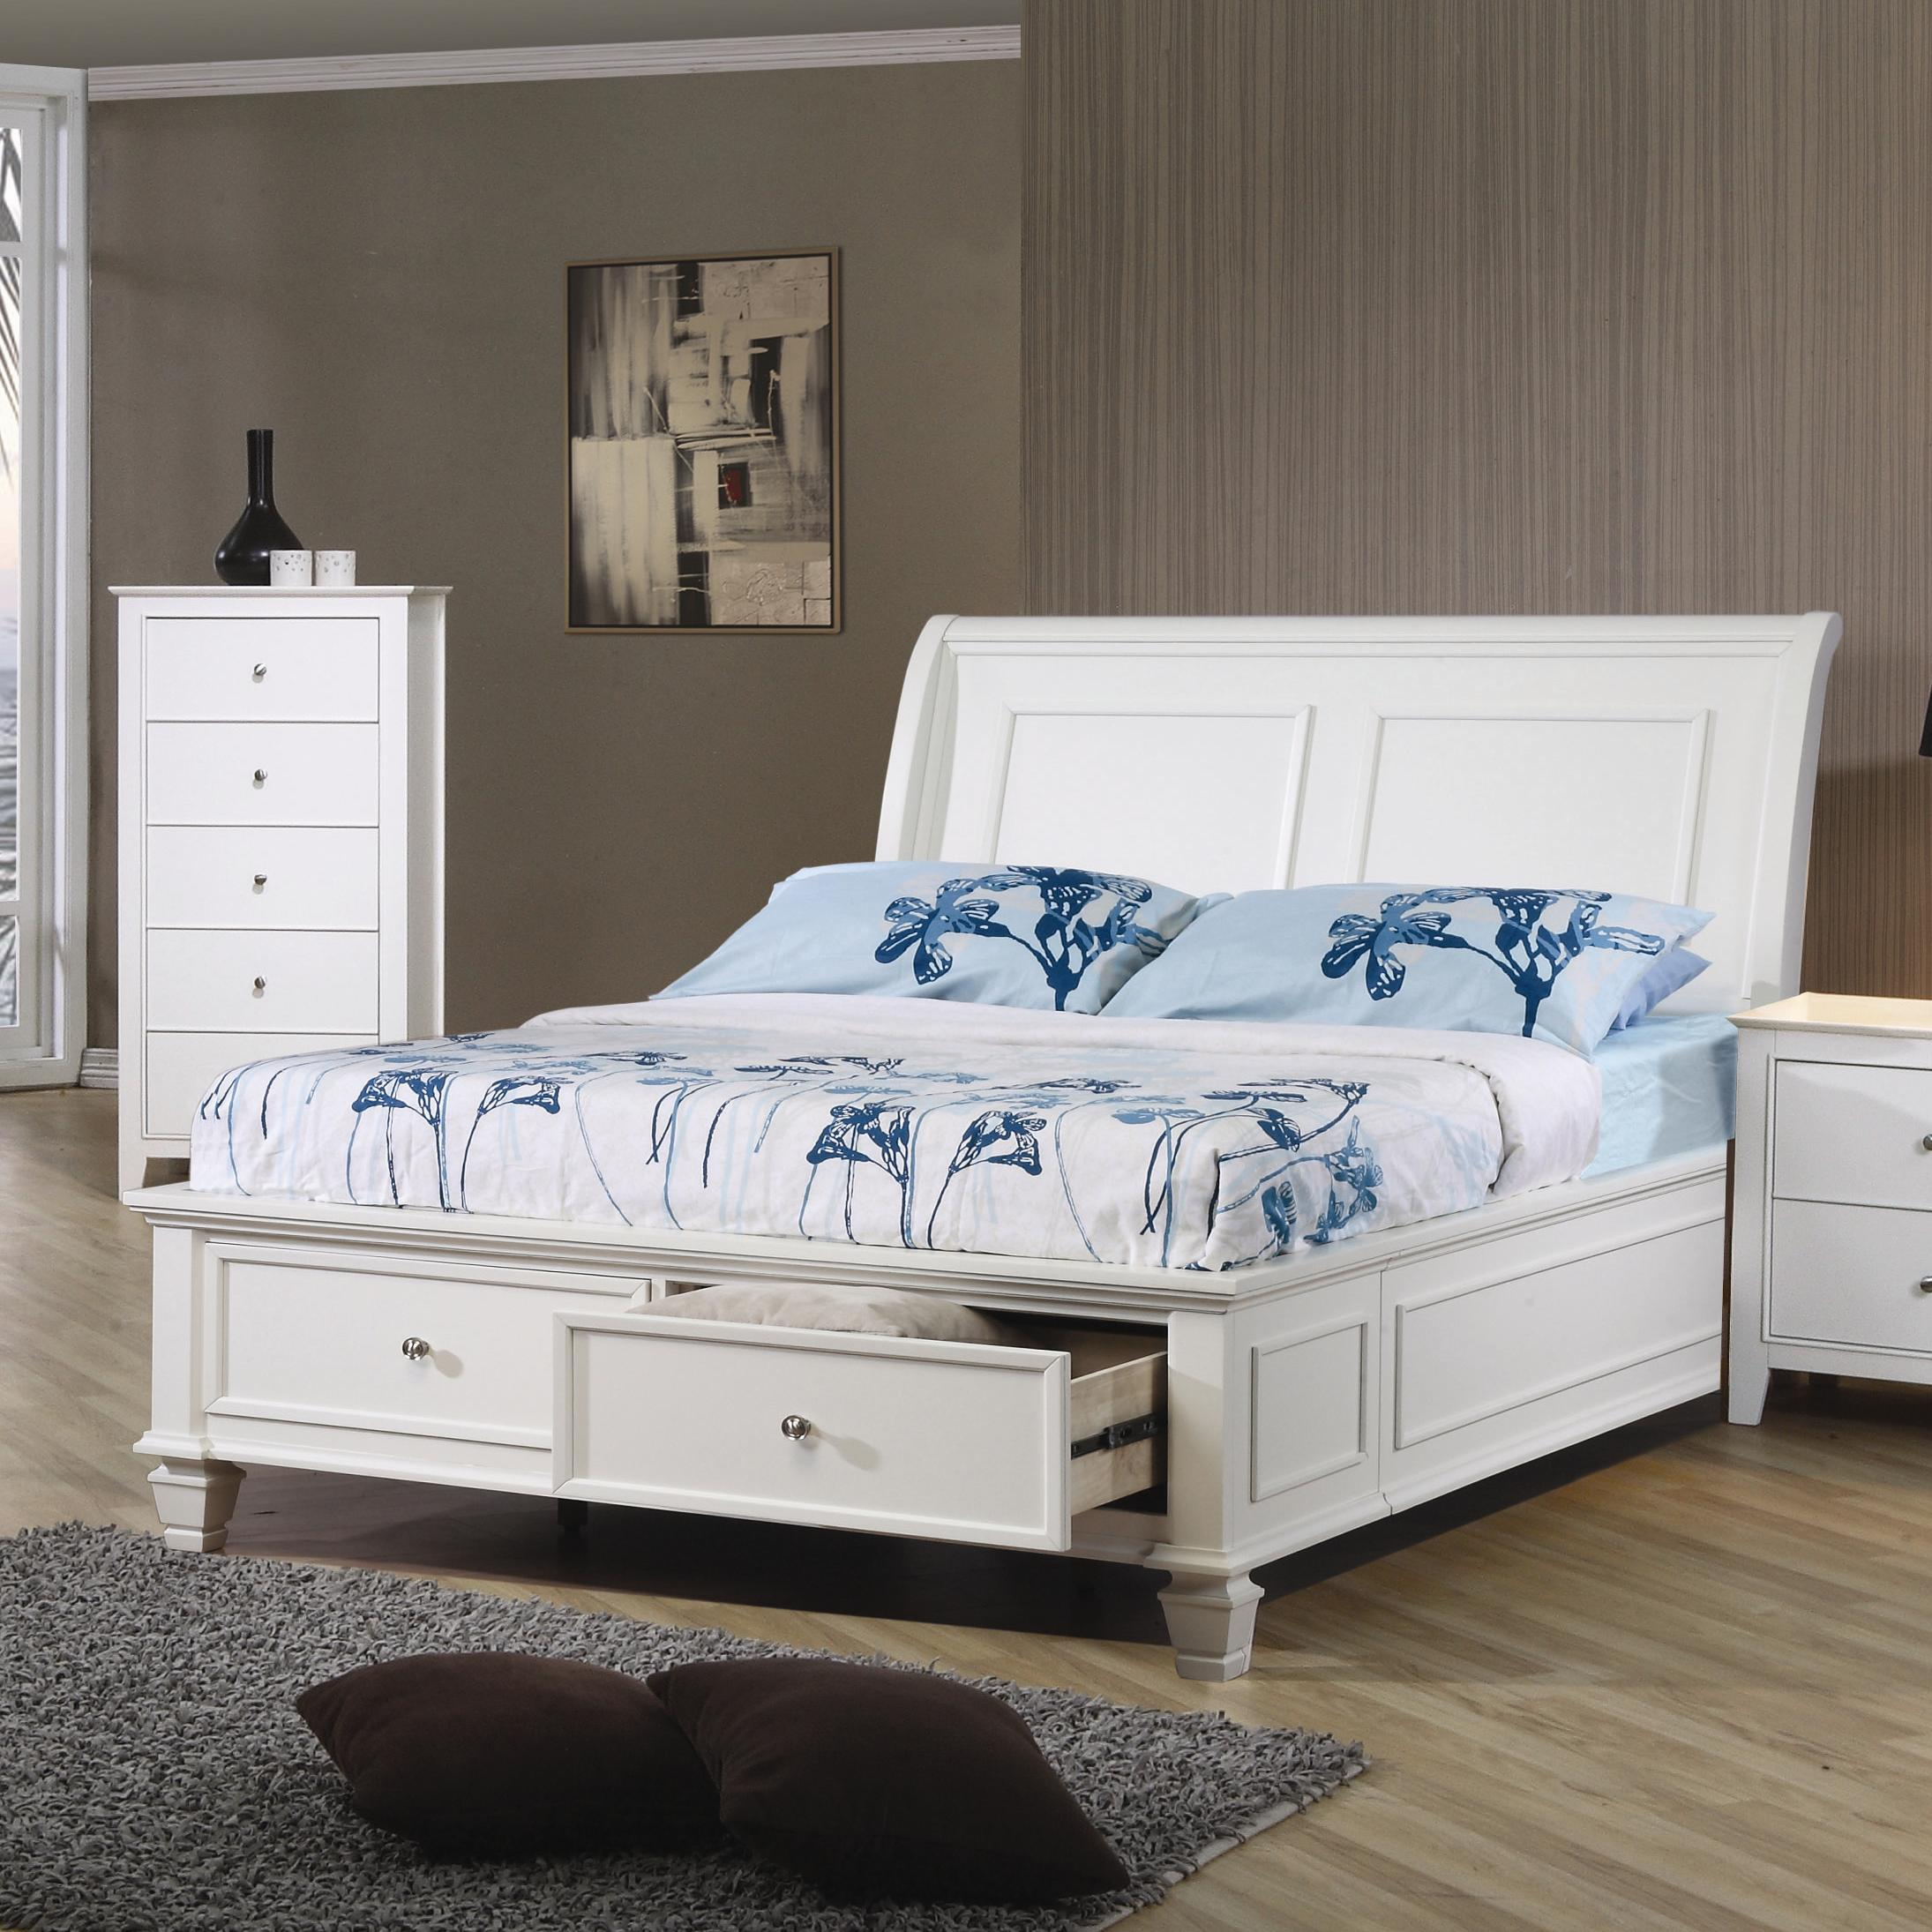 Sandy Beach Twin Sleigh Bed by Coaster at Furniture Superstore - Rochester, MN